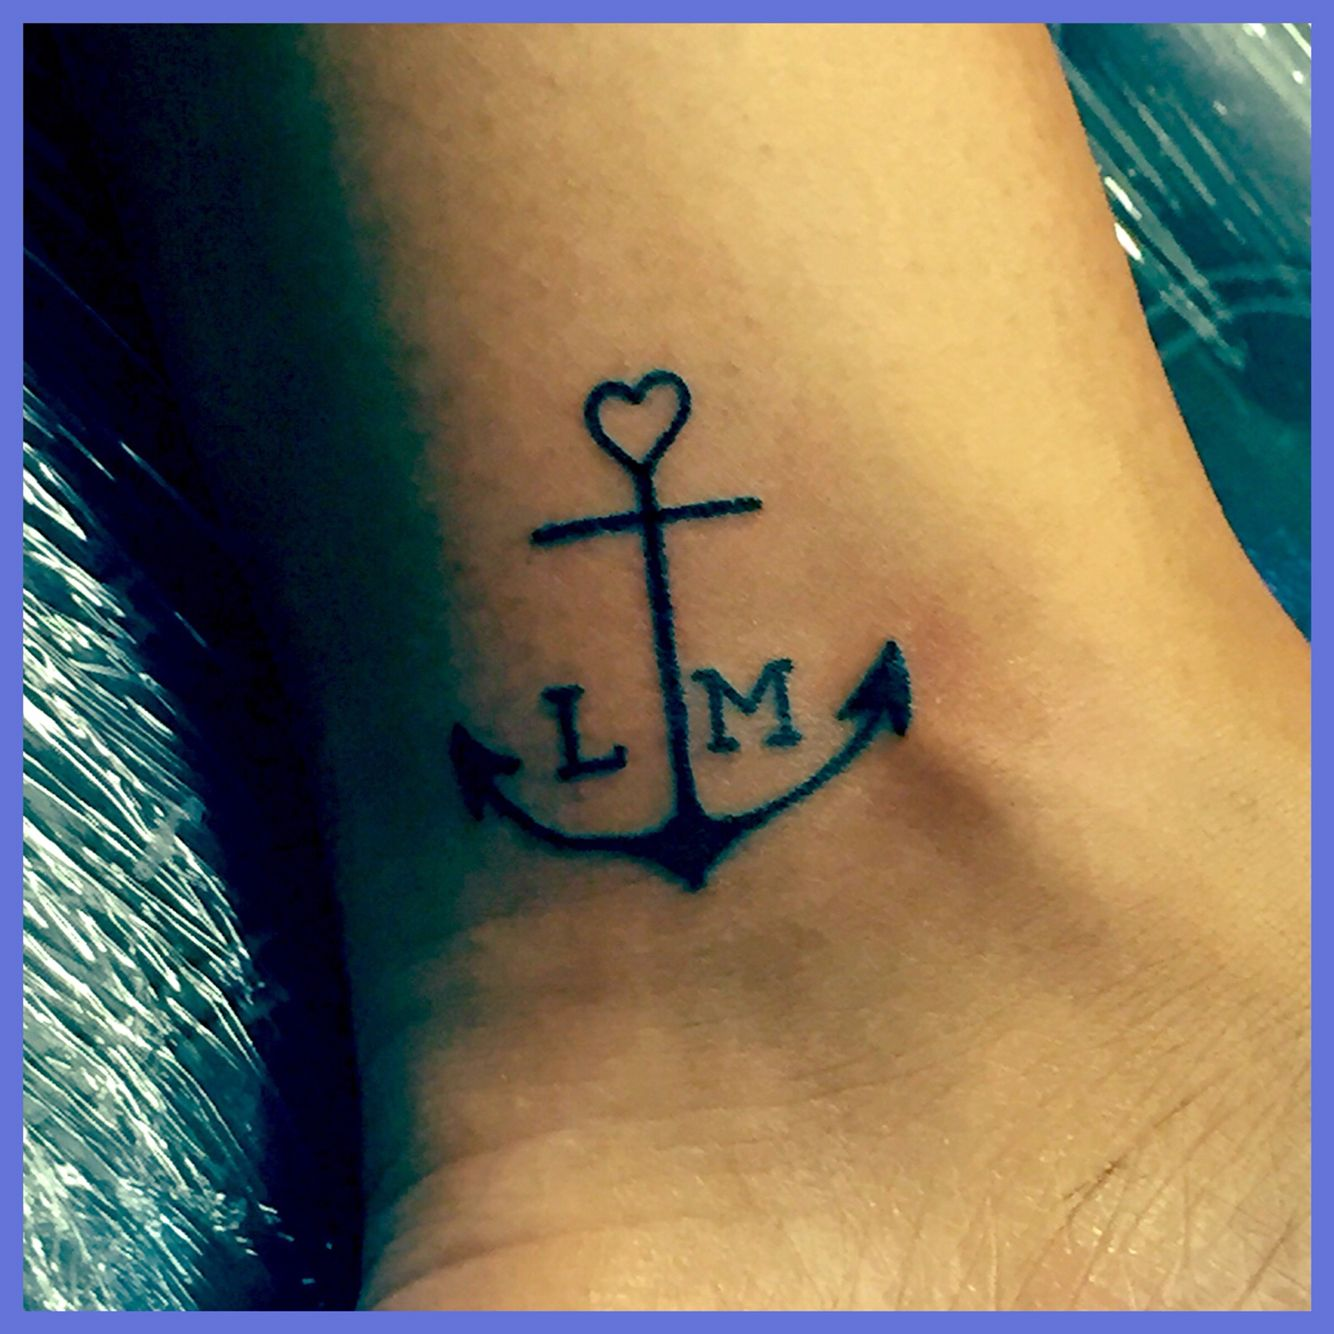 Tattoo symbols for children images for Tattoos for minors